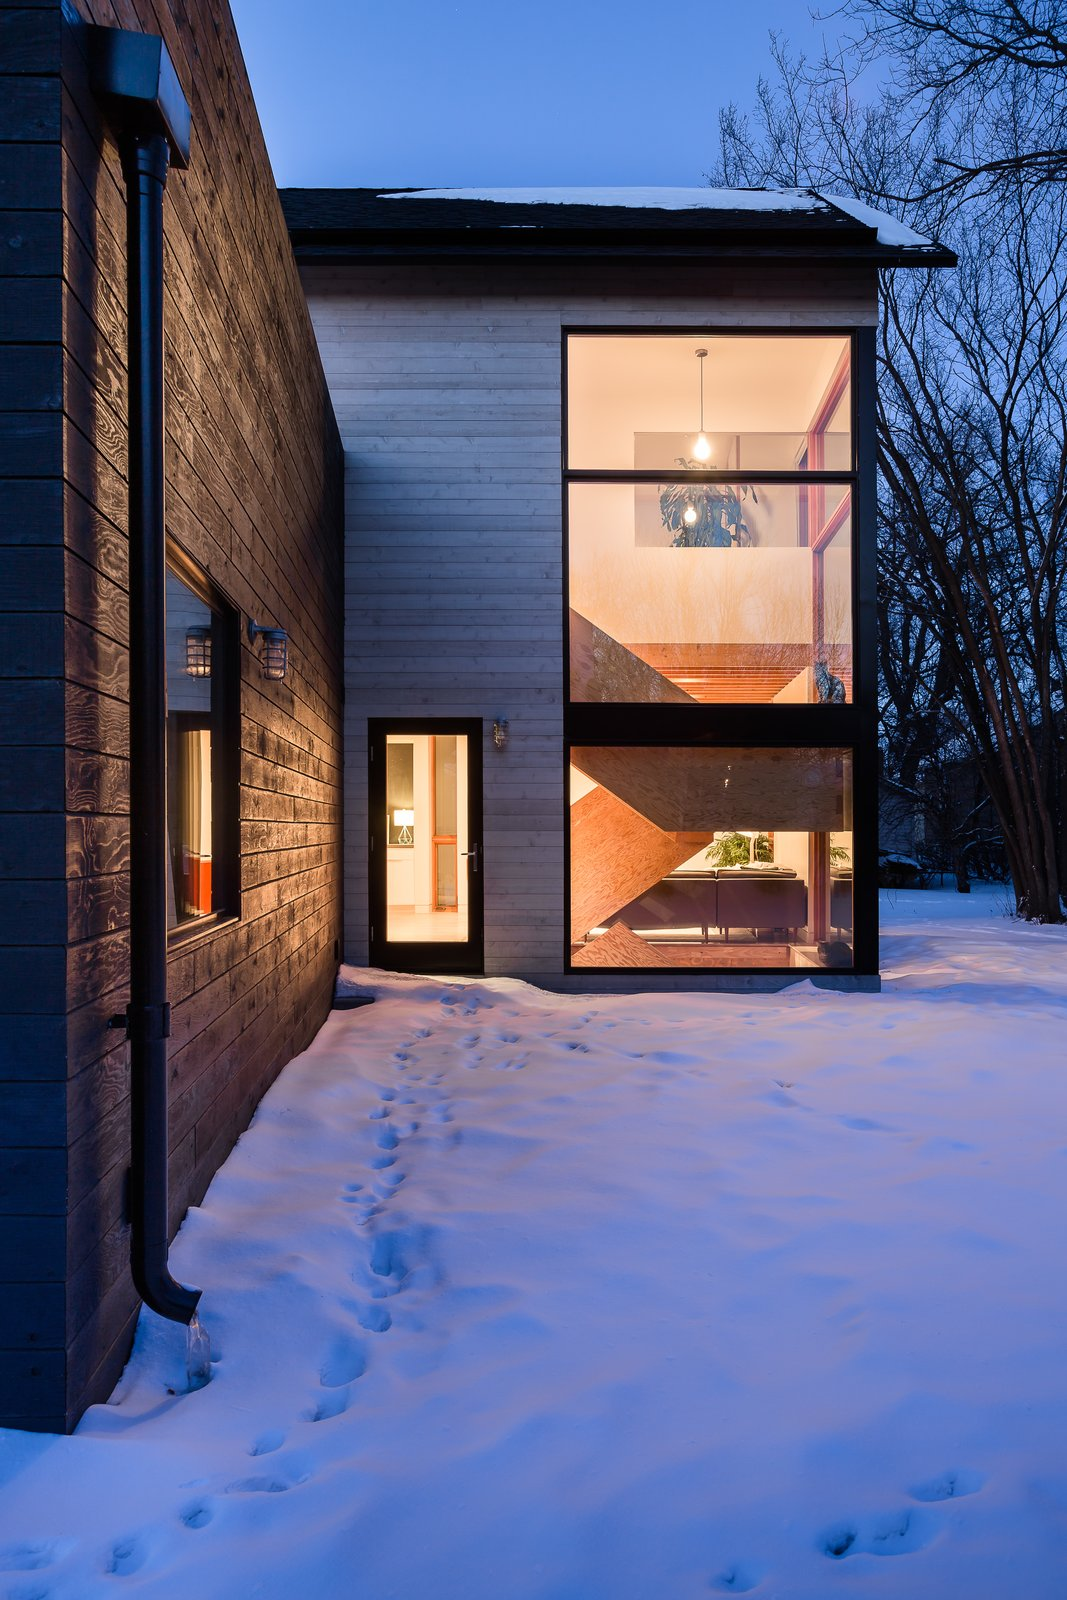 To help keep costs at bay, the dark exterior siding and feature staircase were constructed of fir plywood.